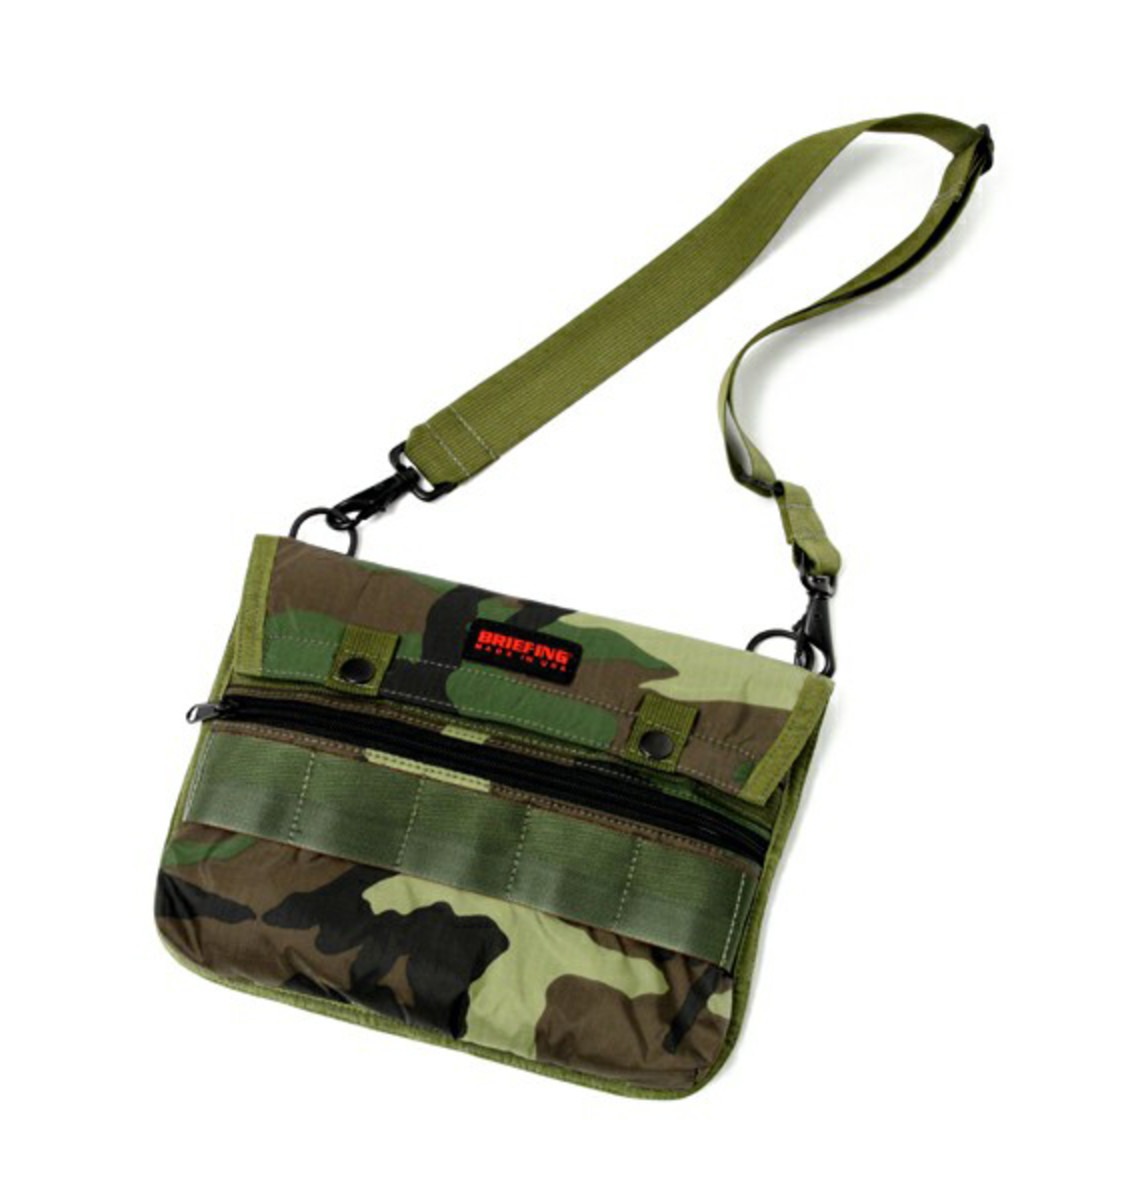 beams-plus-briefing-mil-training-tote-bag-09